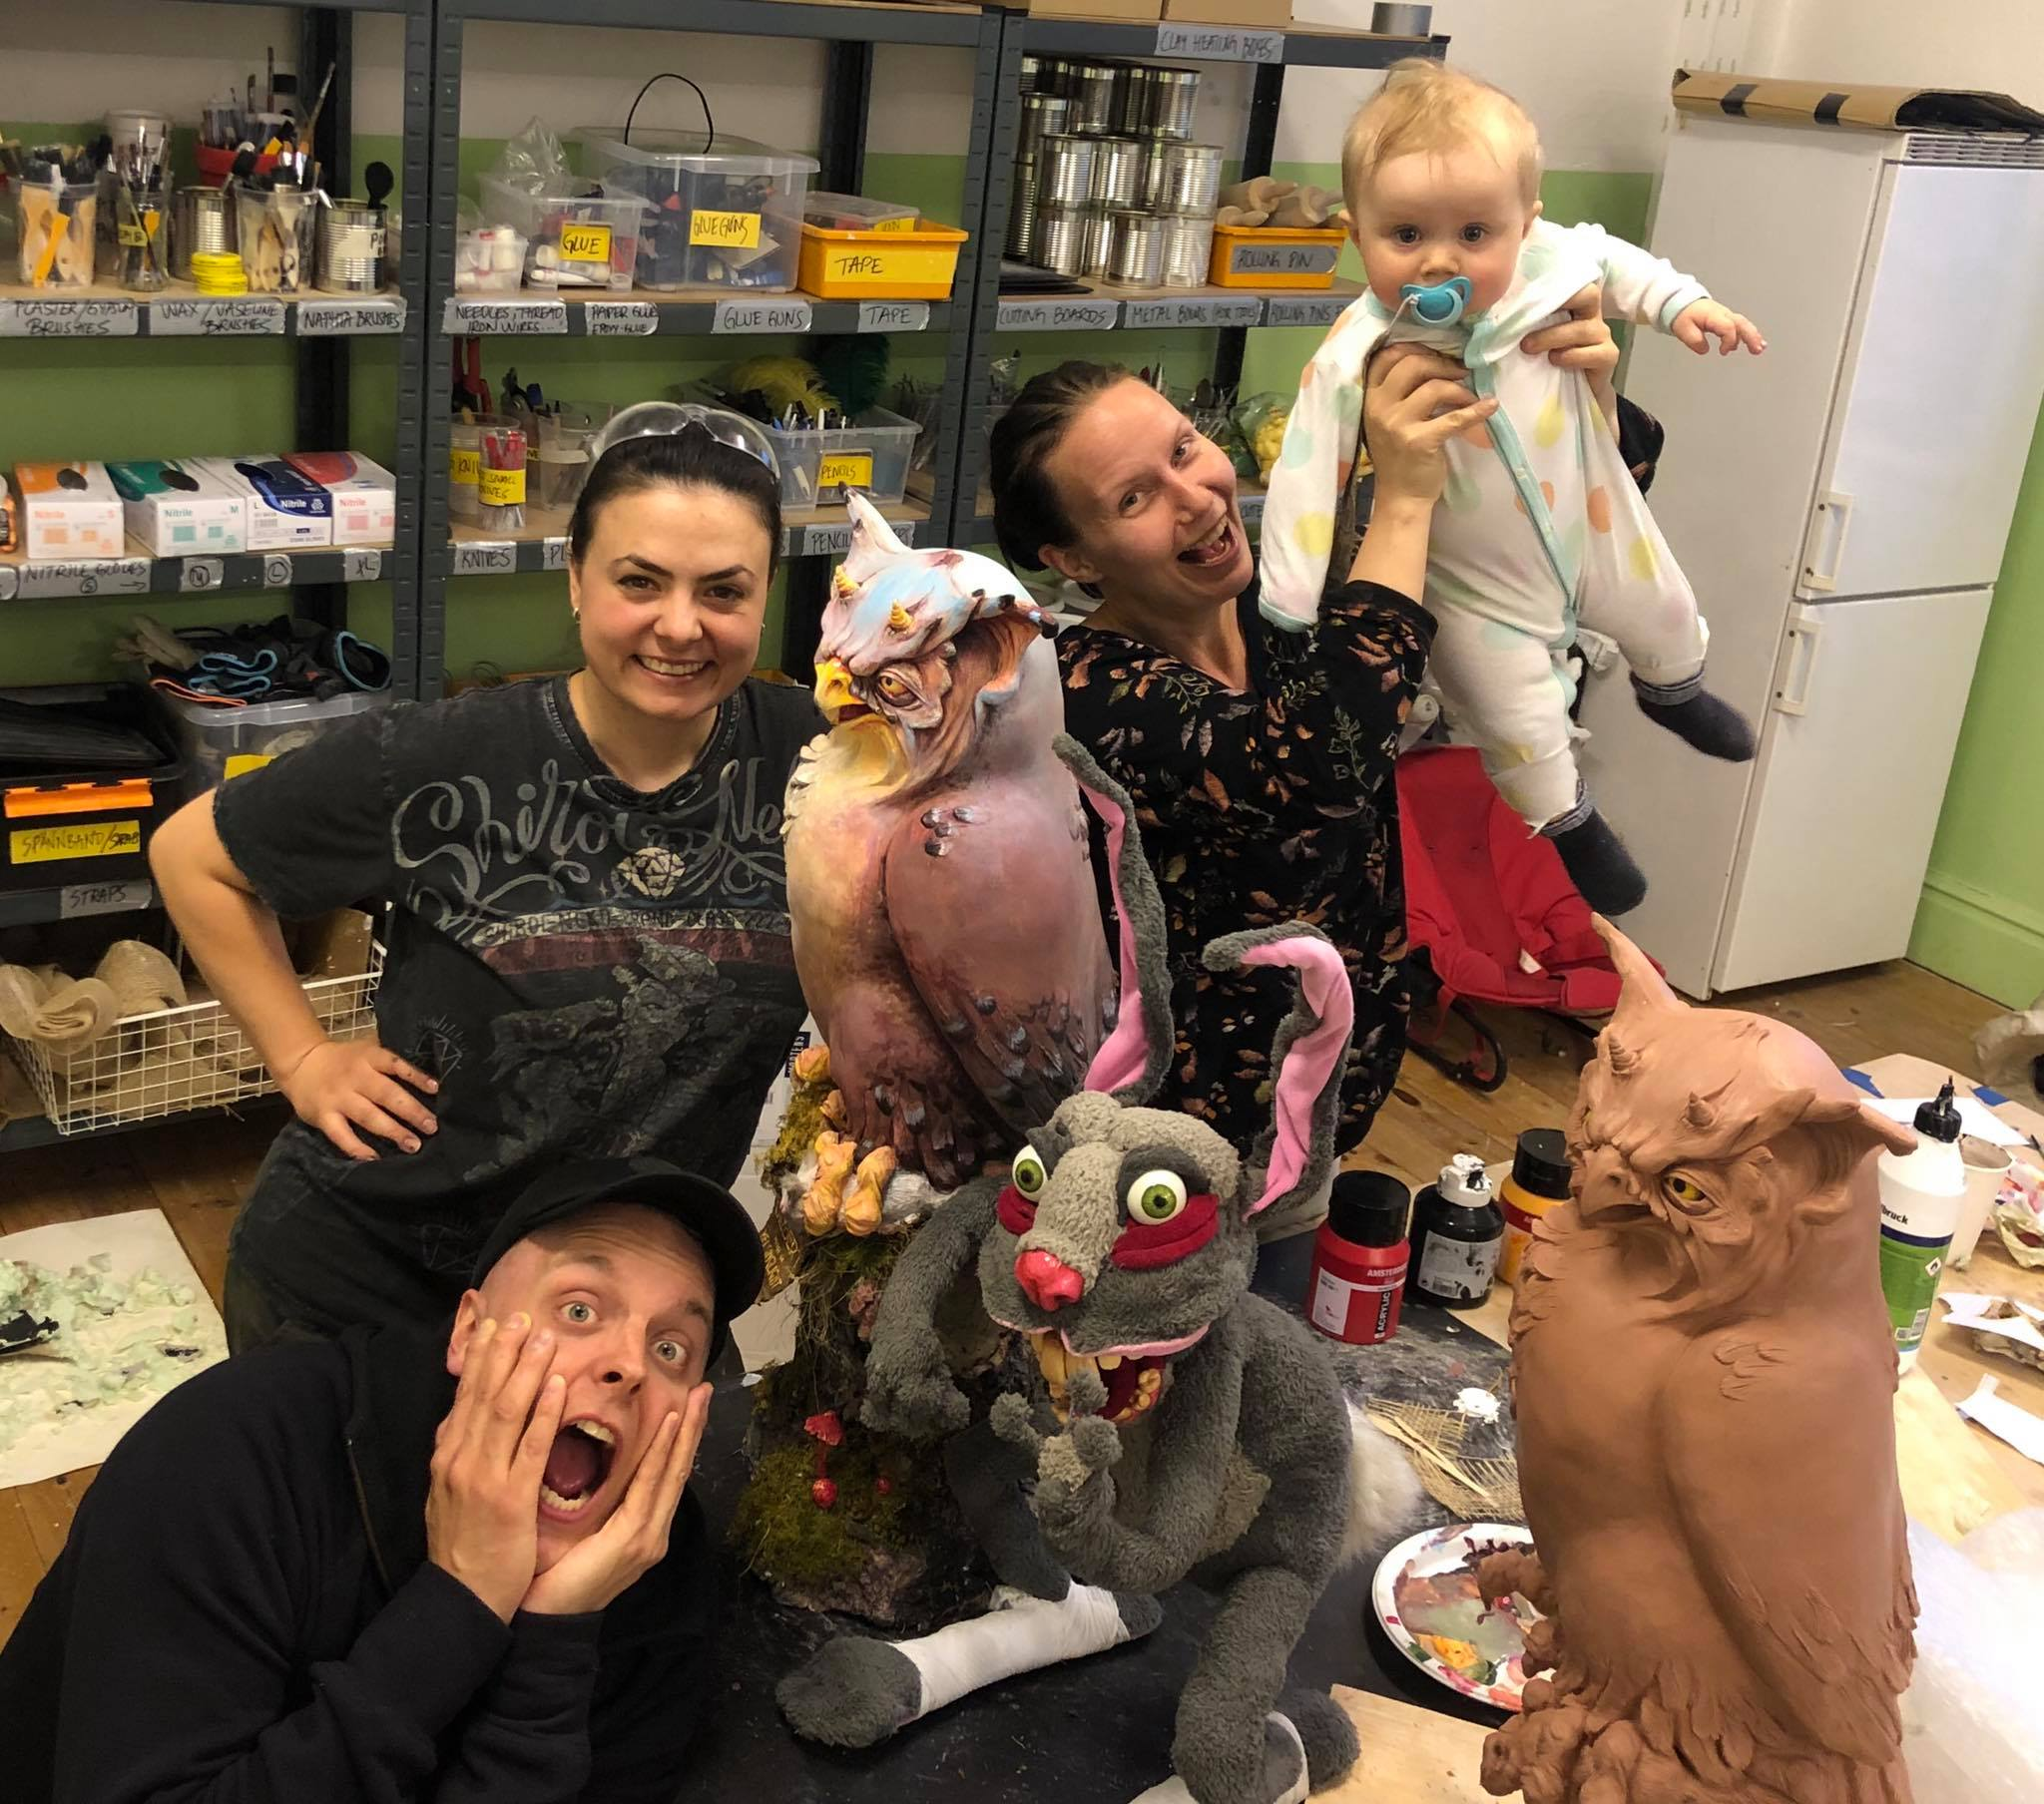 Our last day together at Helsinglight. Fredrik, Amfiria, Petra, LIV, Nasty Bunny and Gilbert the Owl. What a team!